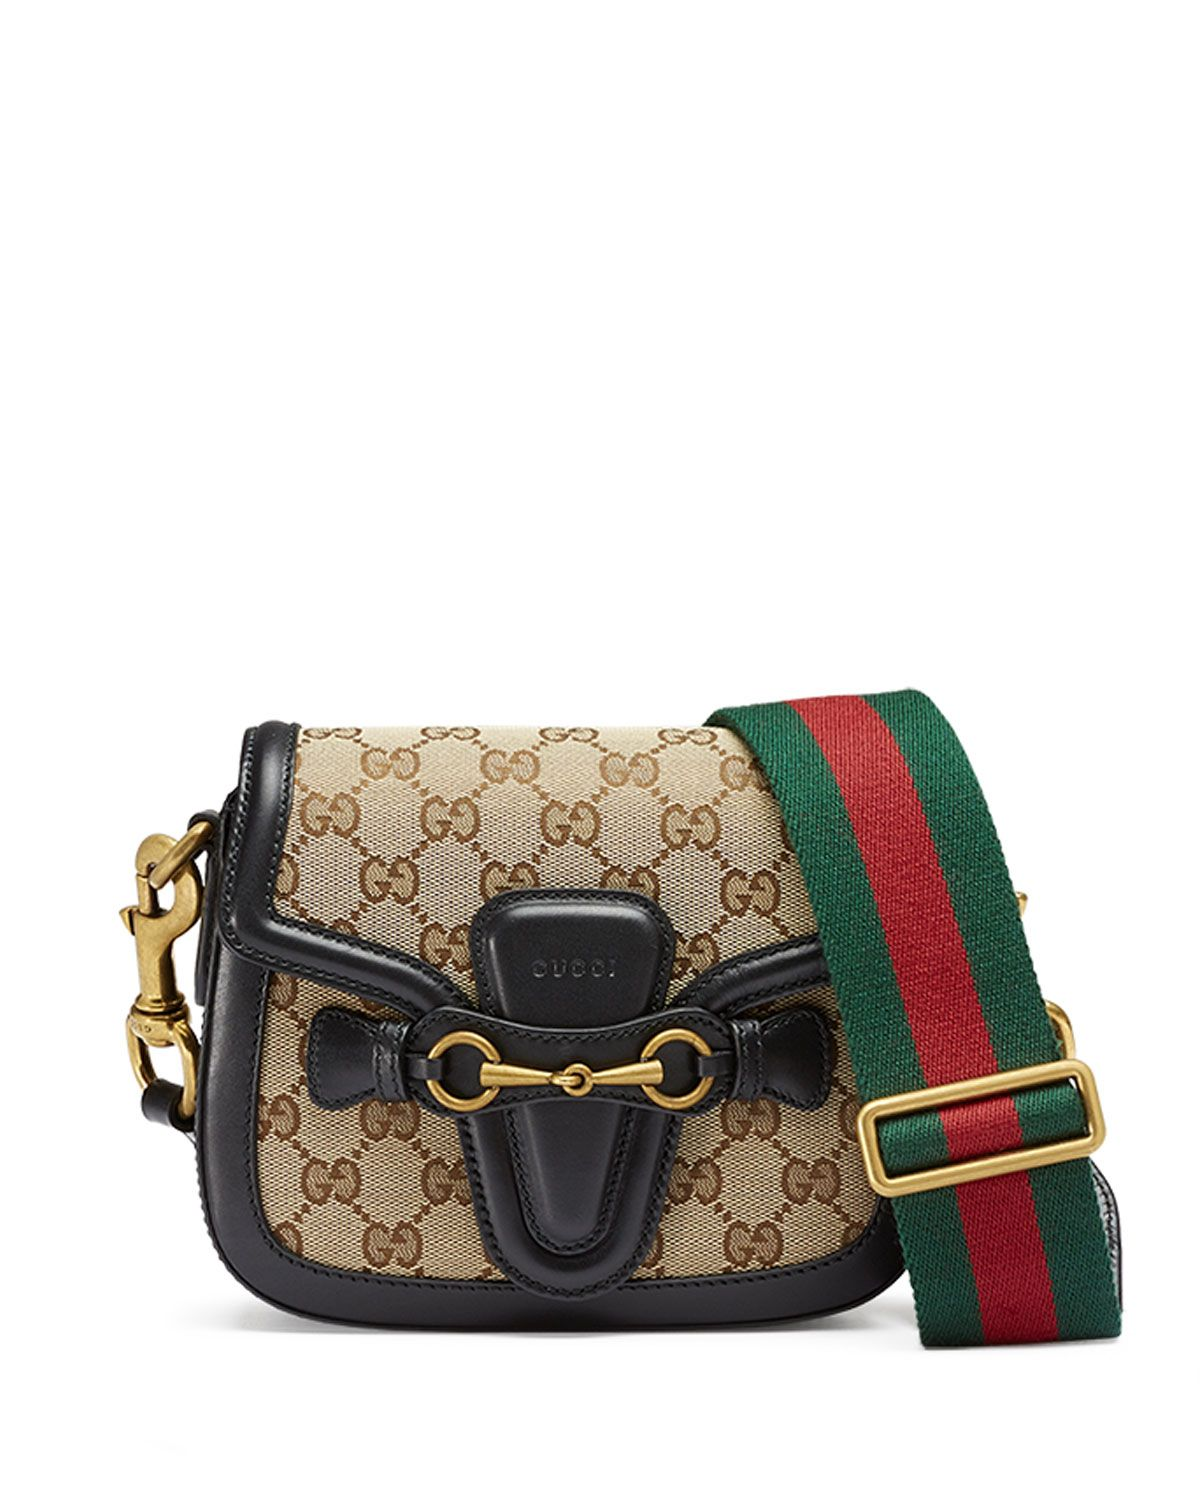 3a7933b4725 Gucci Lady Web Small GG Canvas Shoulder Bag